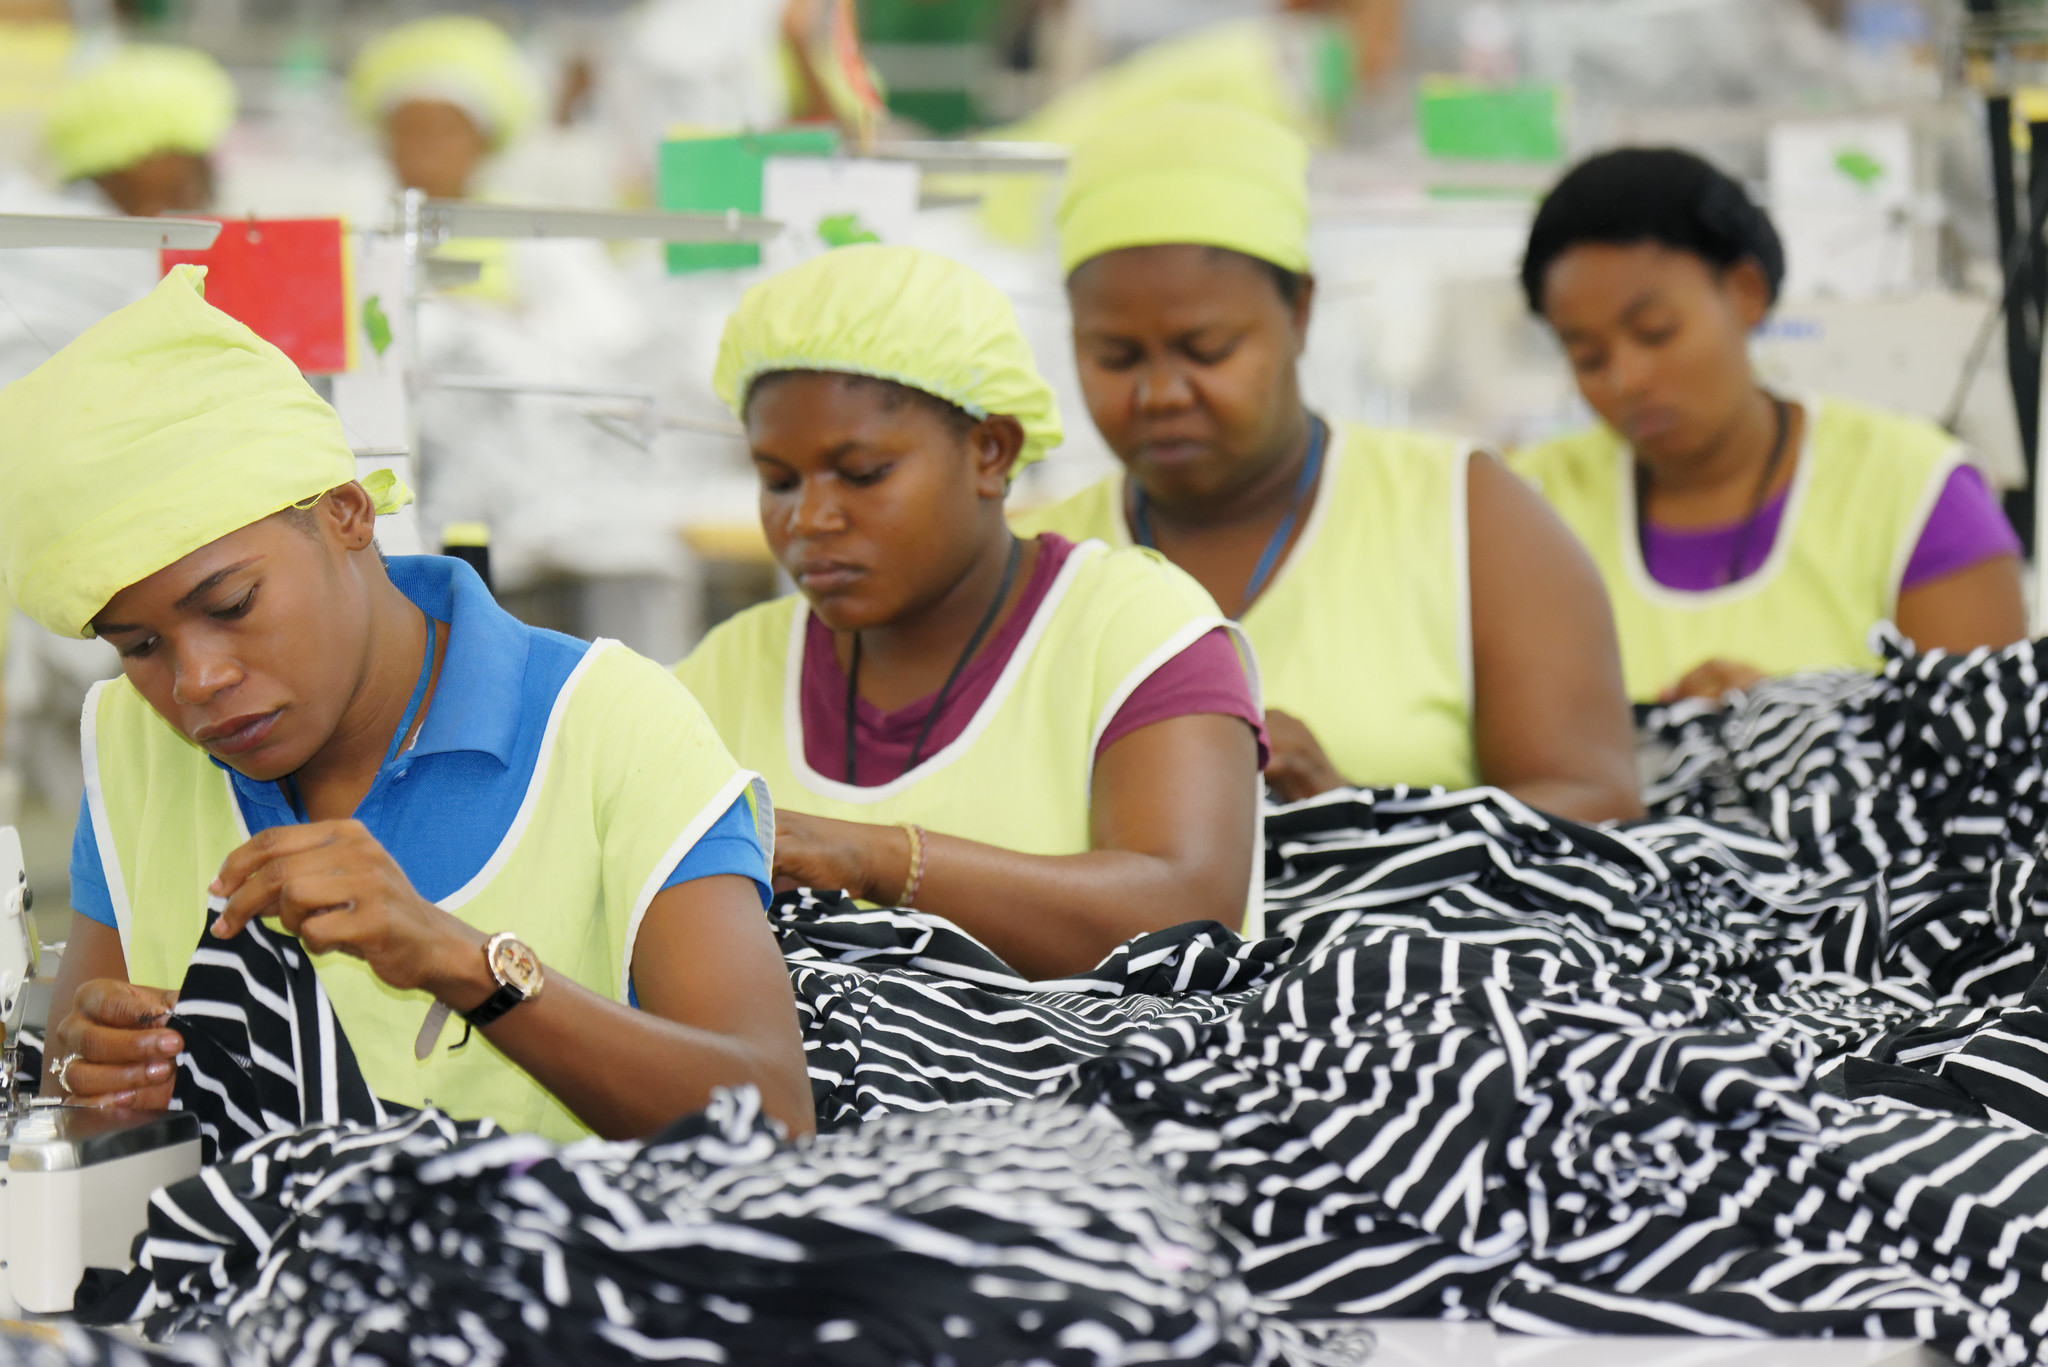 Haitian tailors are seen working on a production line in a local clothing plant. © BetterWork